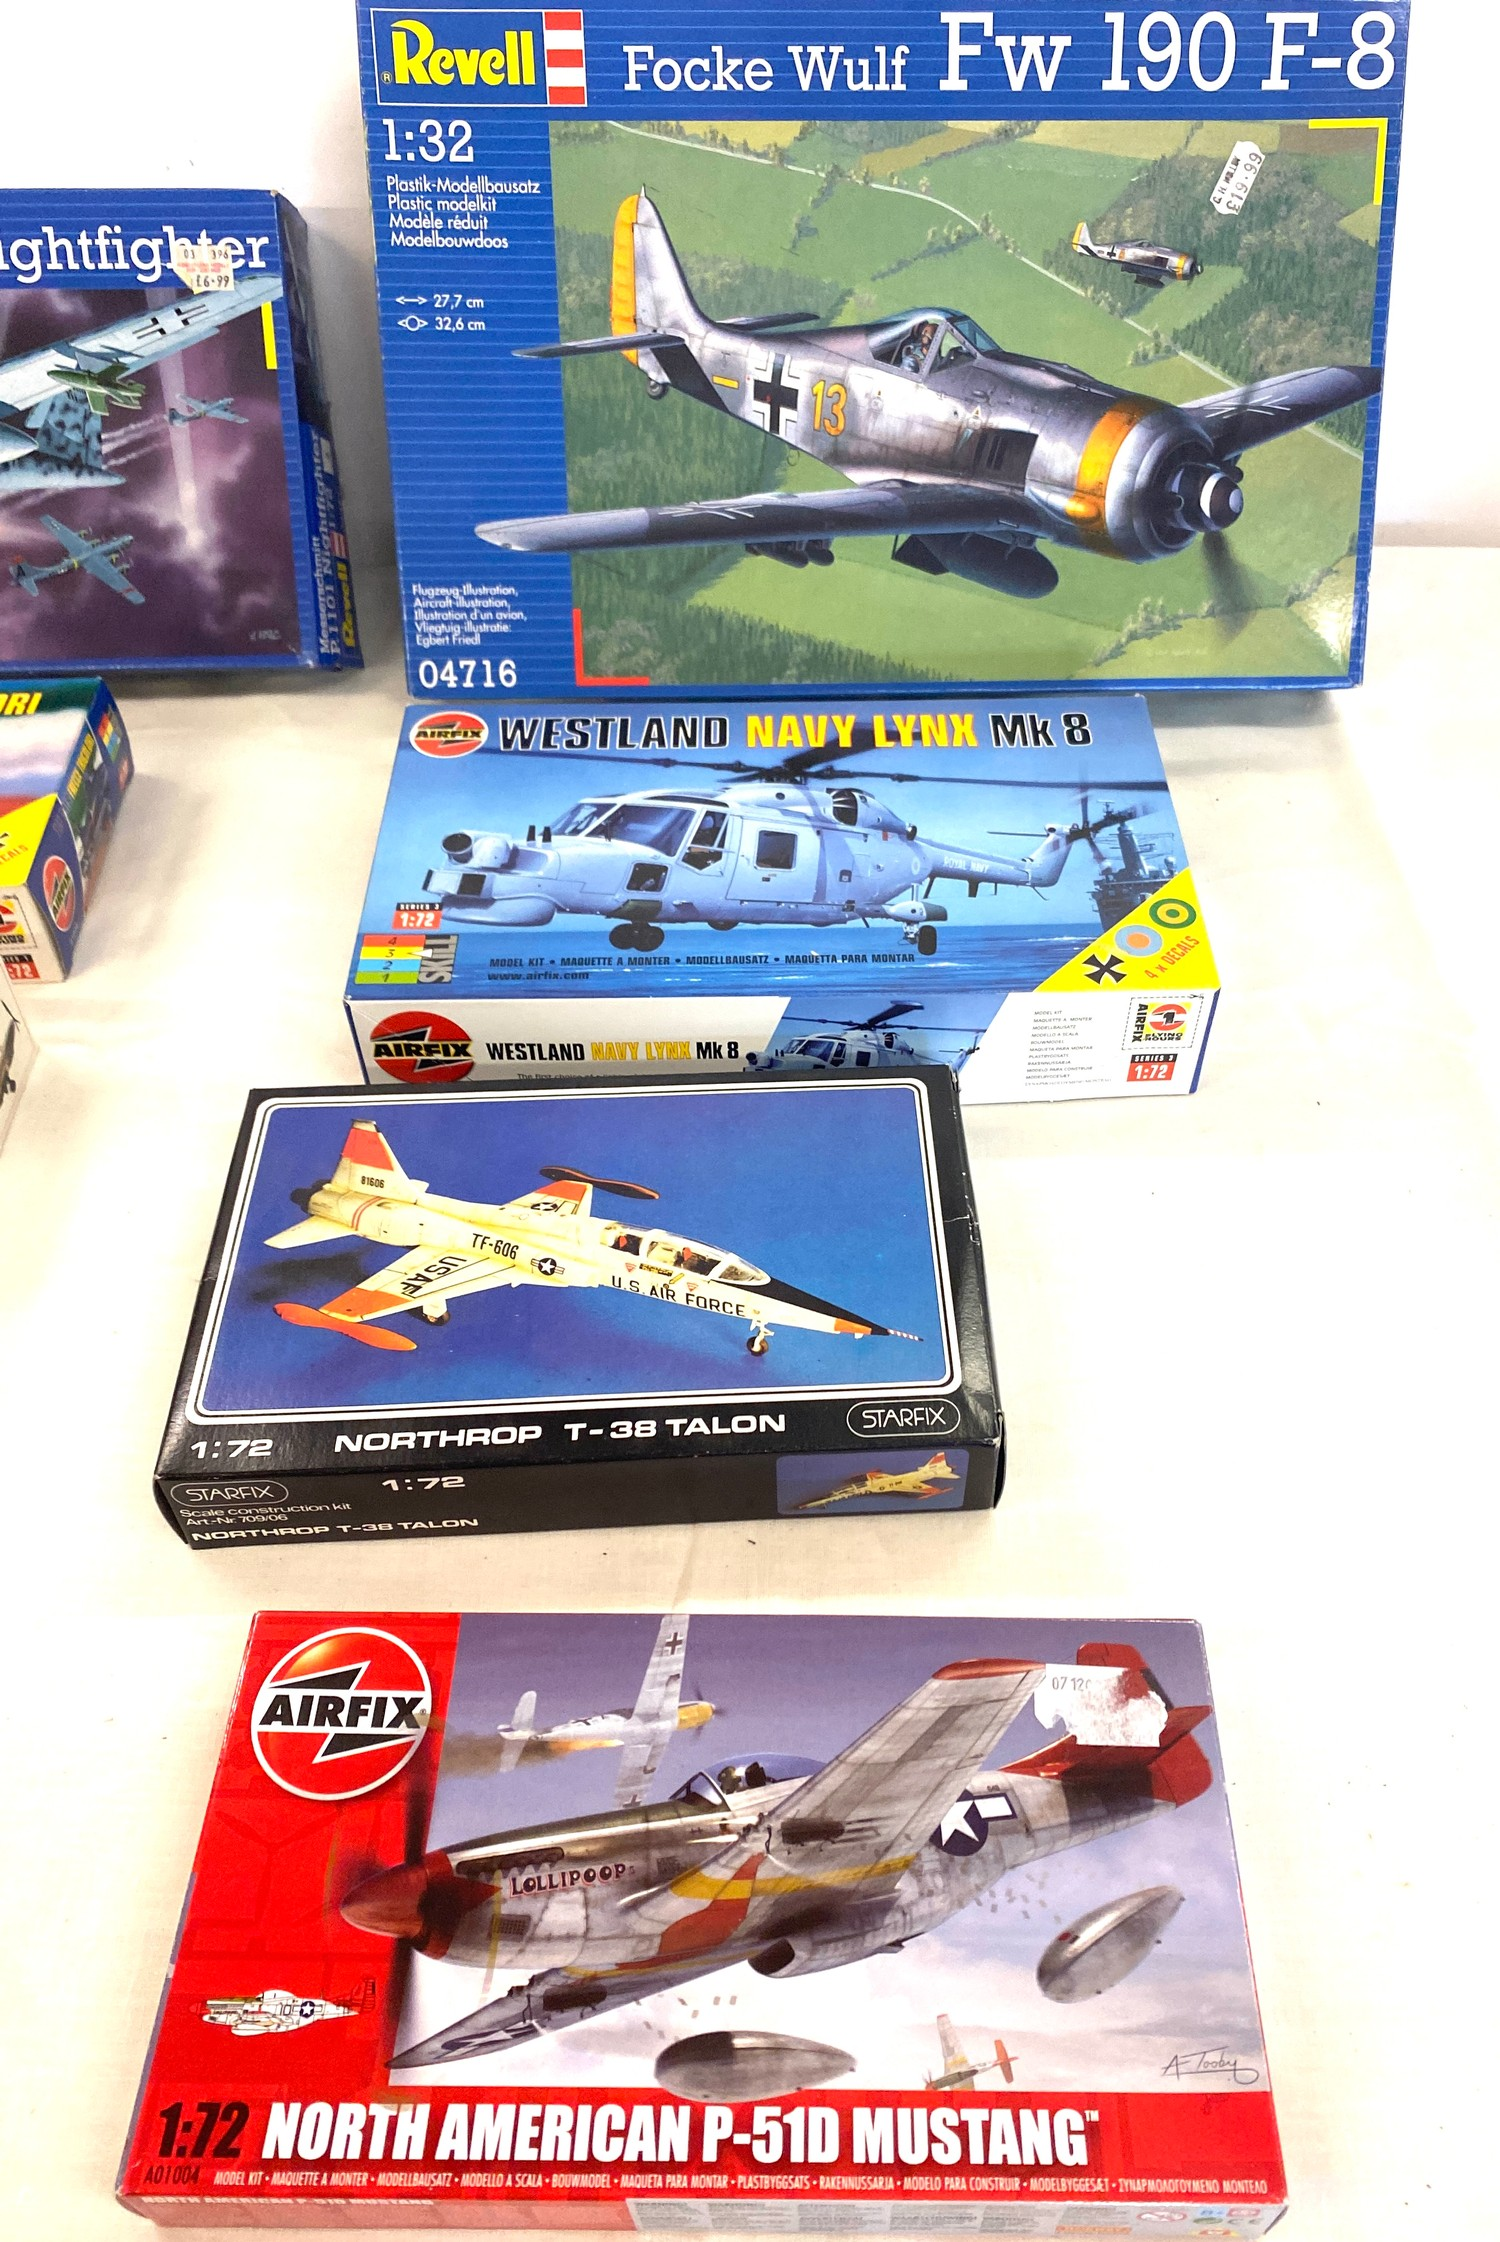 Selection of 8 boxed airfix models to include, Revell, P.1101 nightfighter, Focke Wulf FW 190, - Image 3 of 3